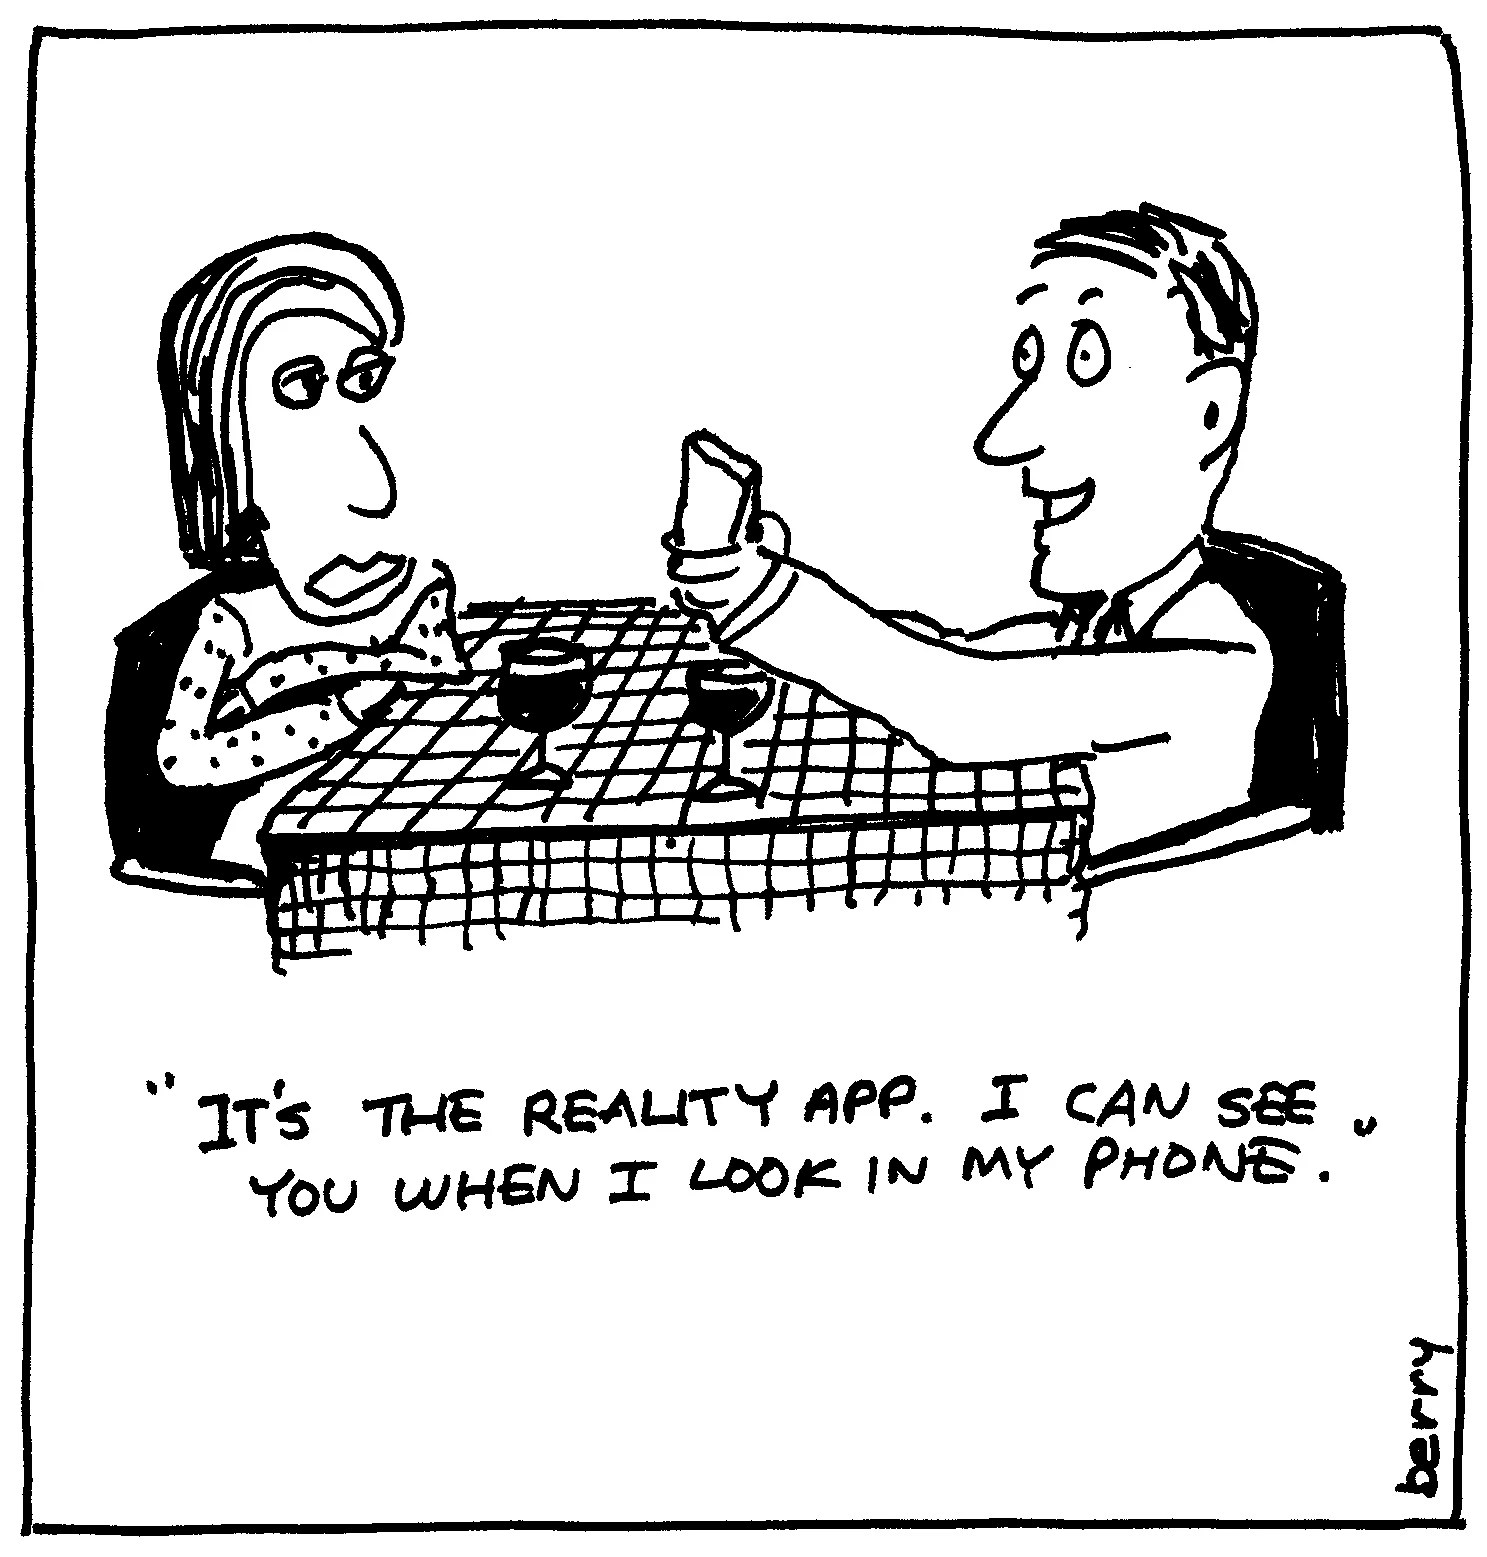 Funny Smartphone Related Comics That Might Also Strike A Chord